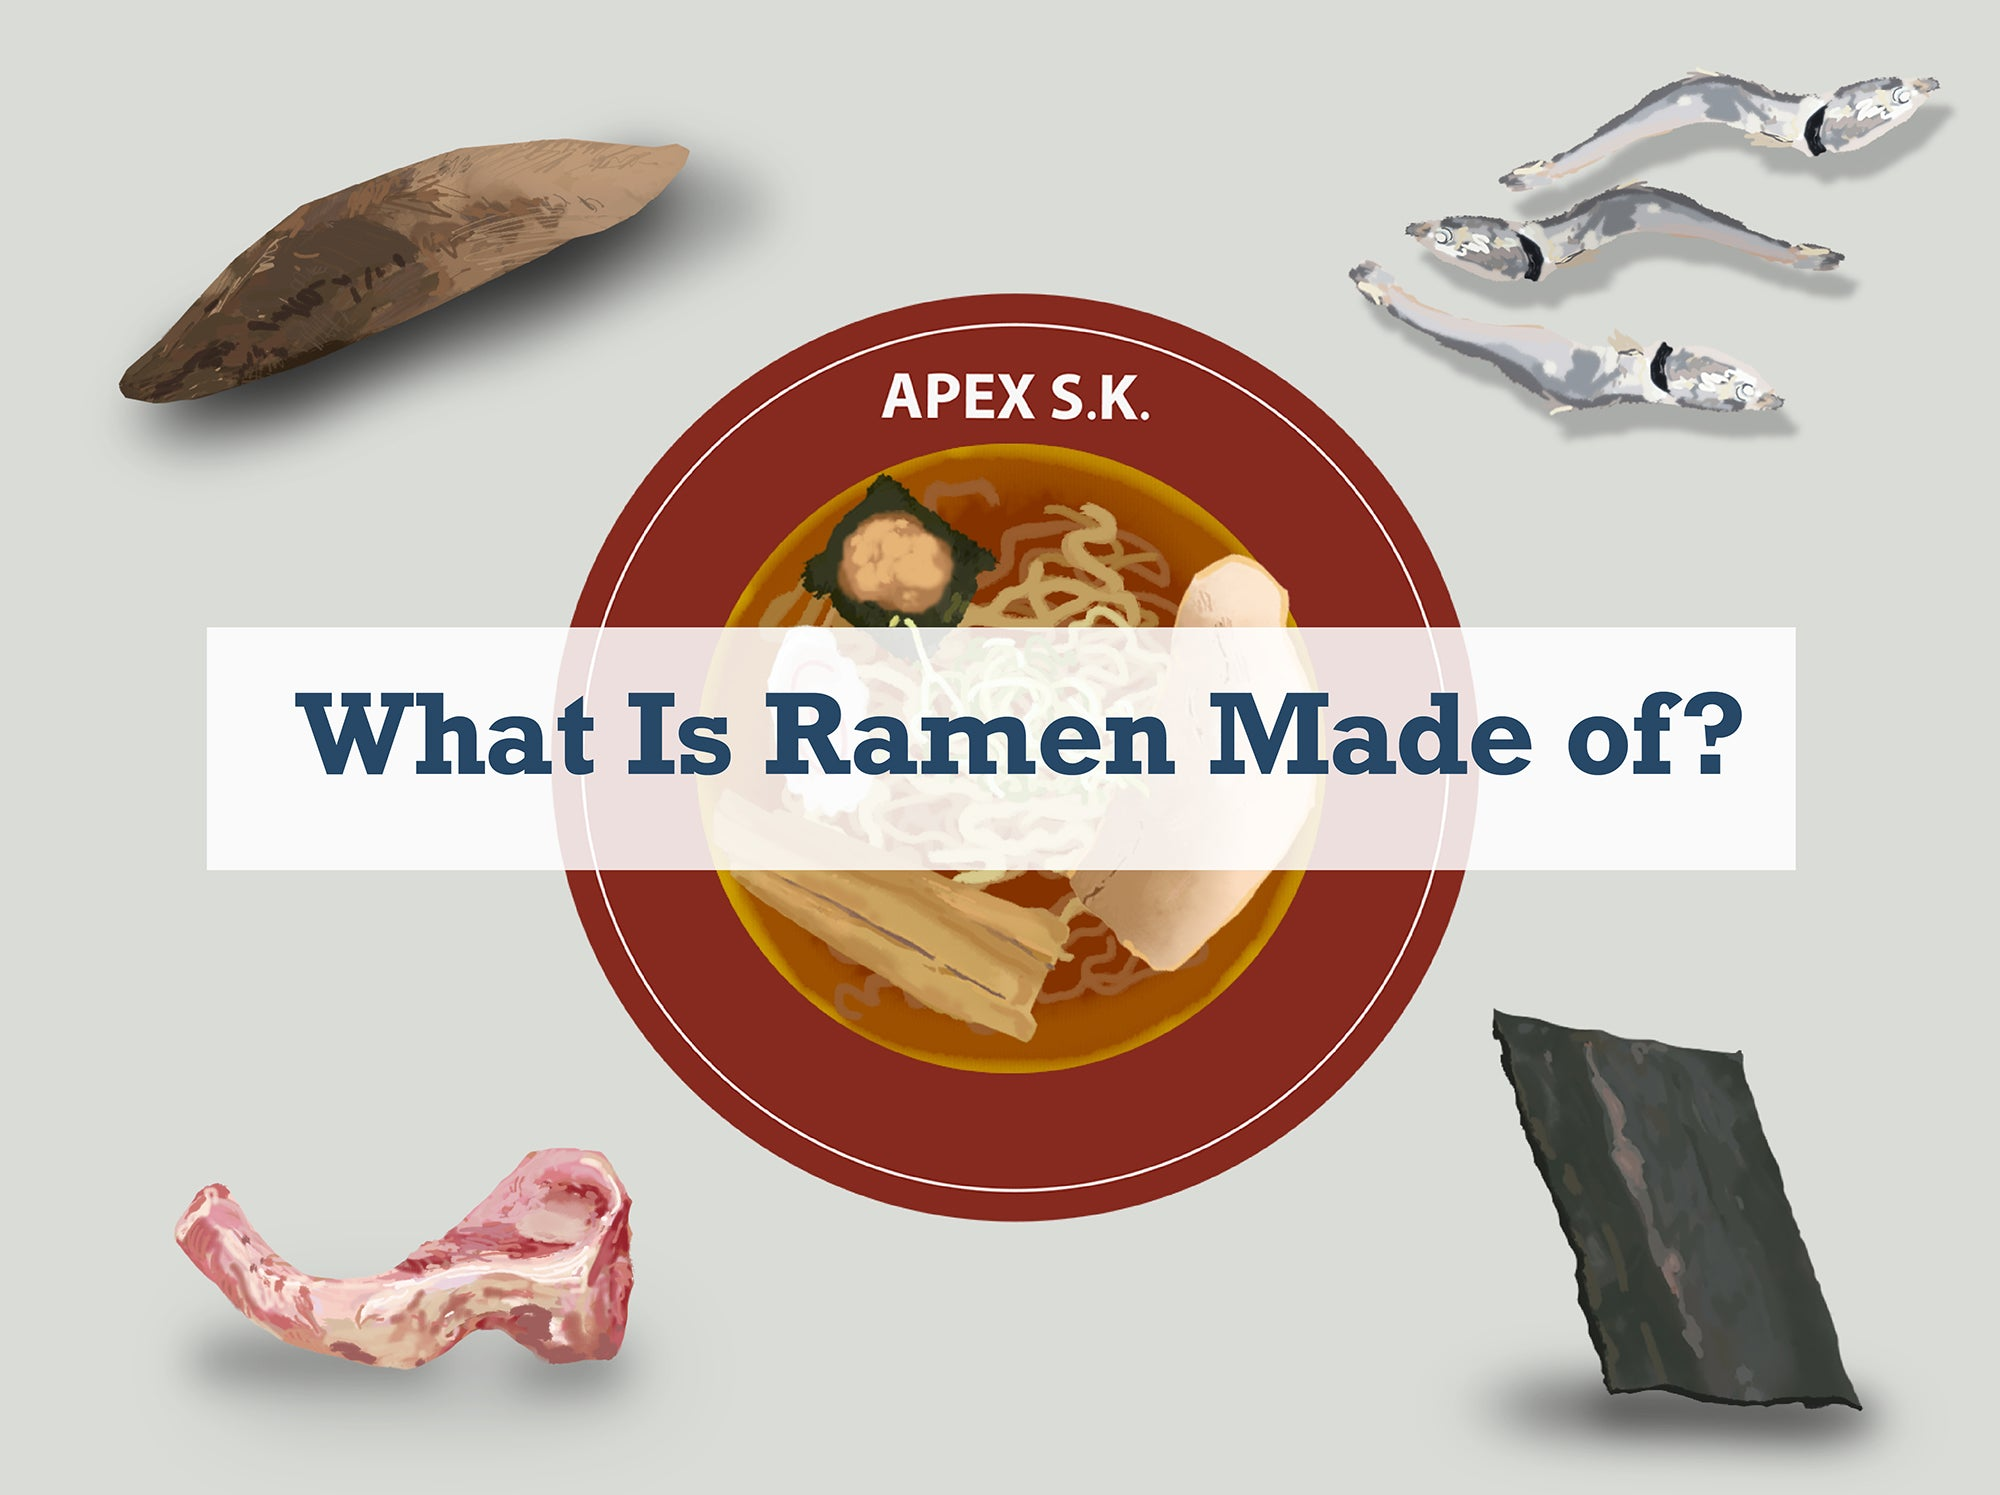 What Is Ramen Made of? 15 Facts You've Probably Never Heard of